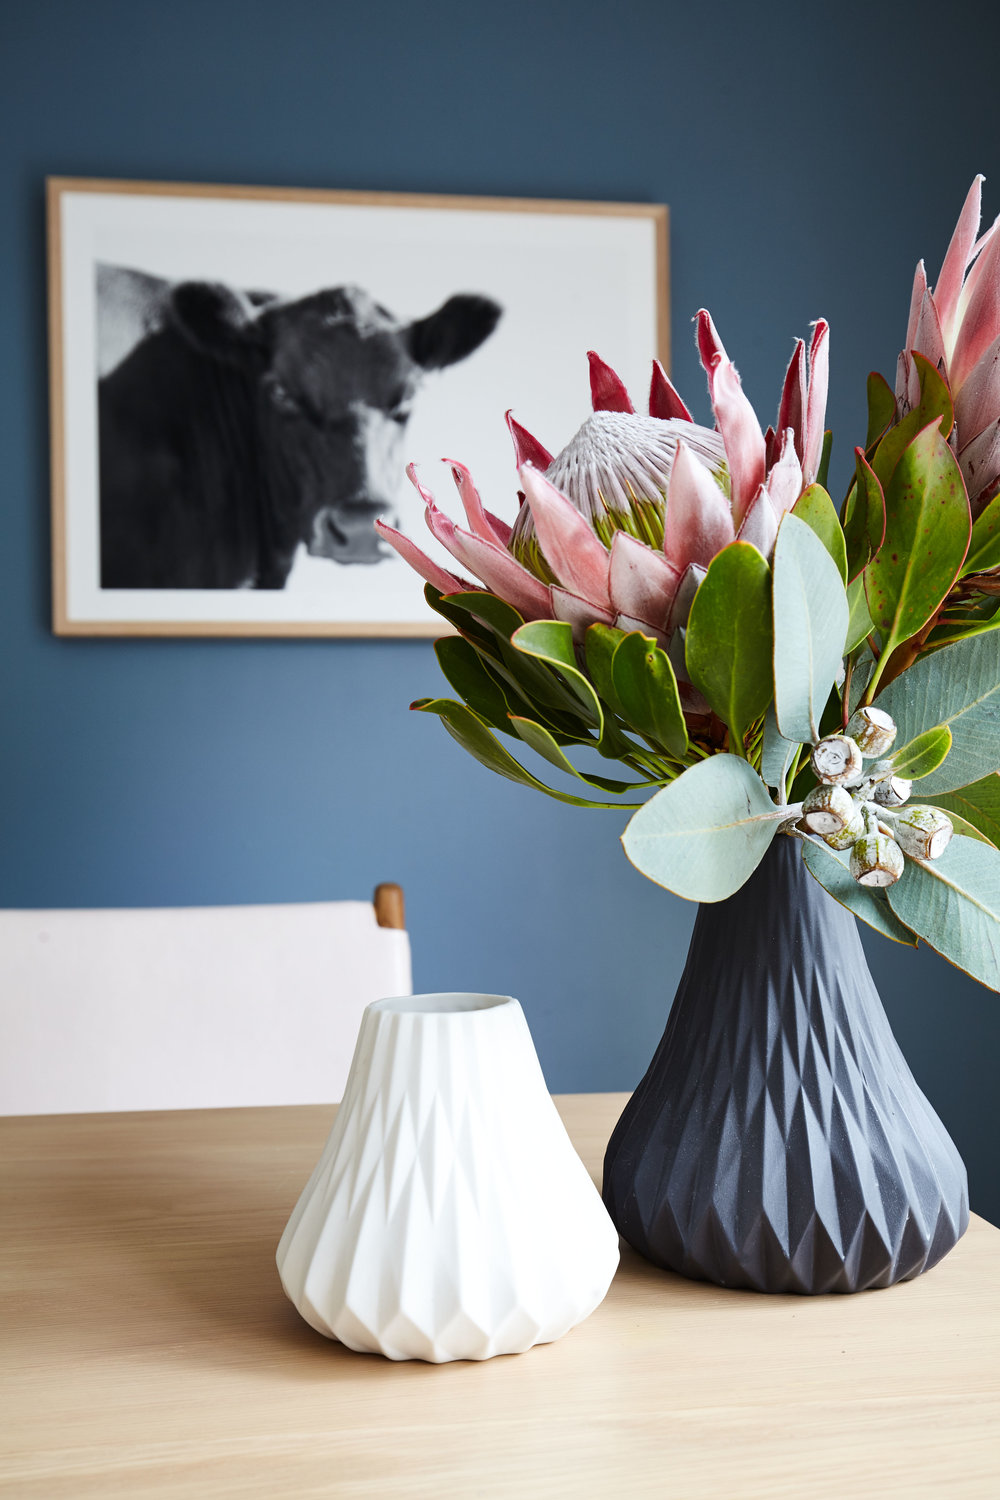 Maitland Street Interiors, Sarah Elshaug, Interior Stylist Melbourne, The MSI Studio, Home Office, Elsie + Hugo, Cow Prints, Limited Edition Artwork